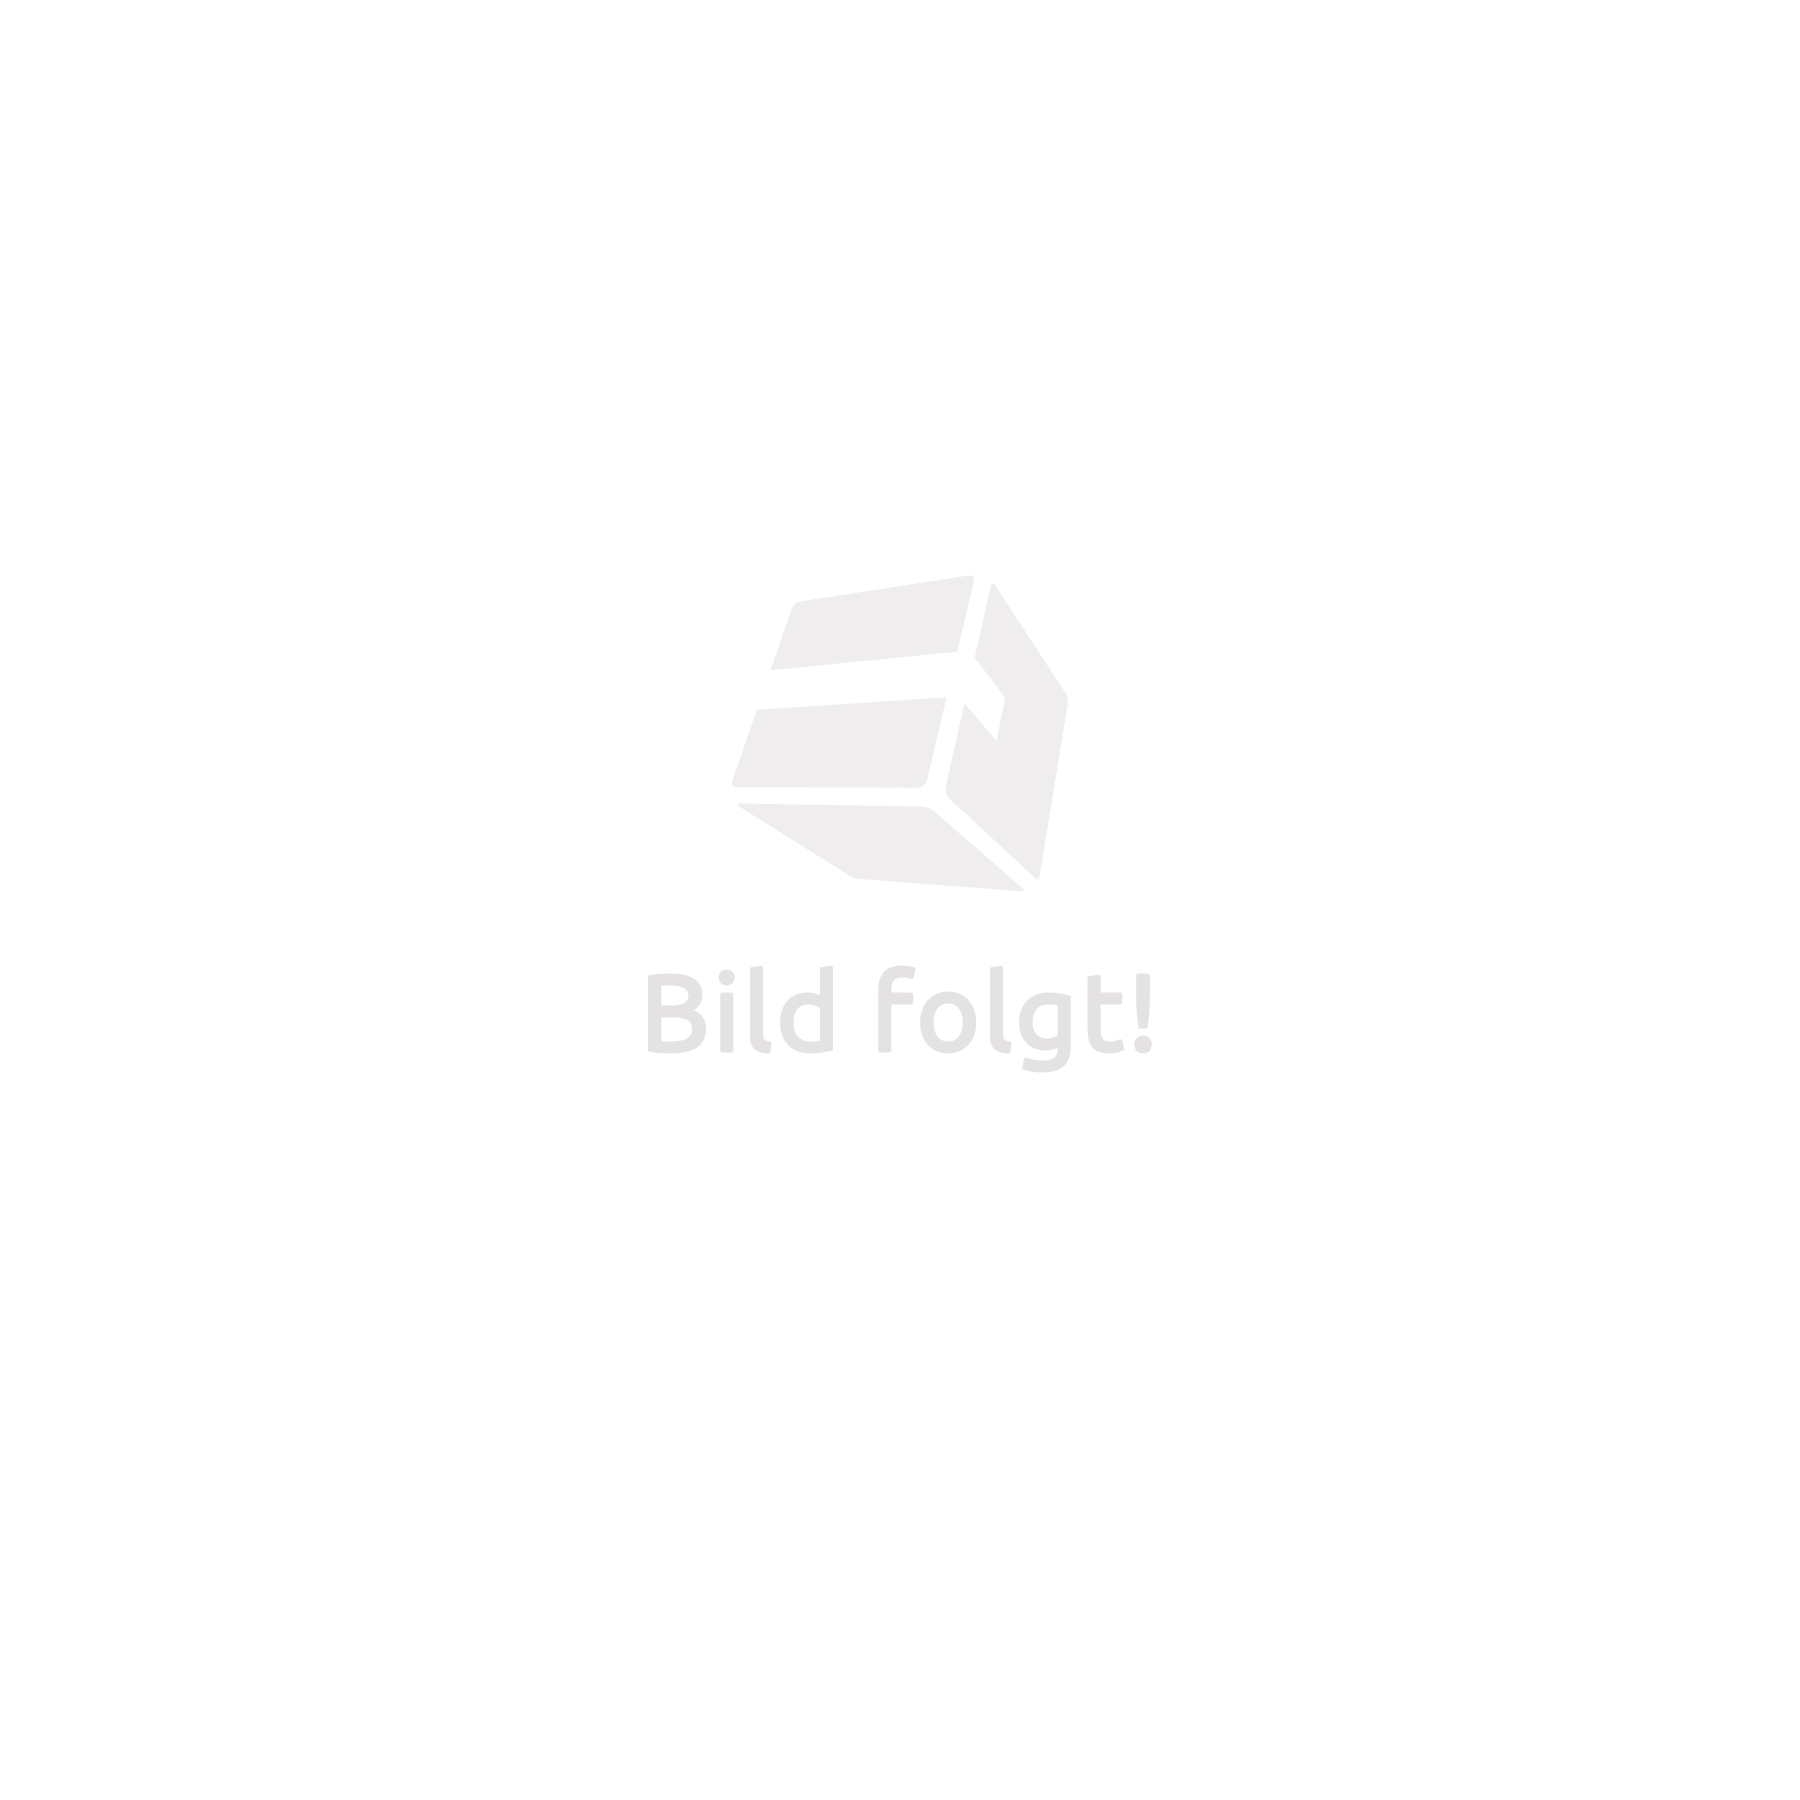 1,000 microfibre cloths